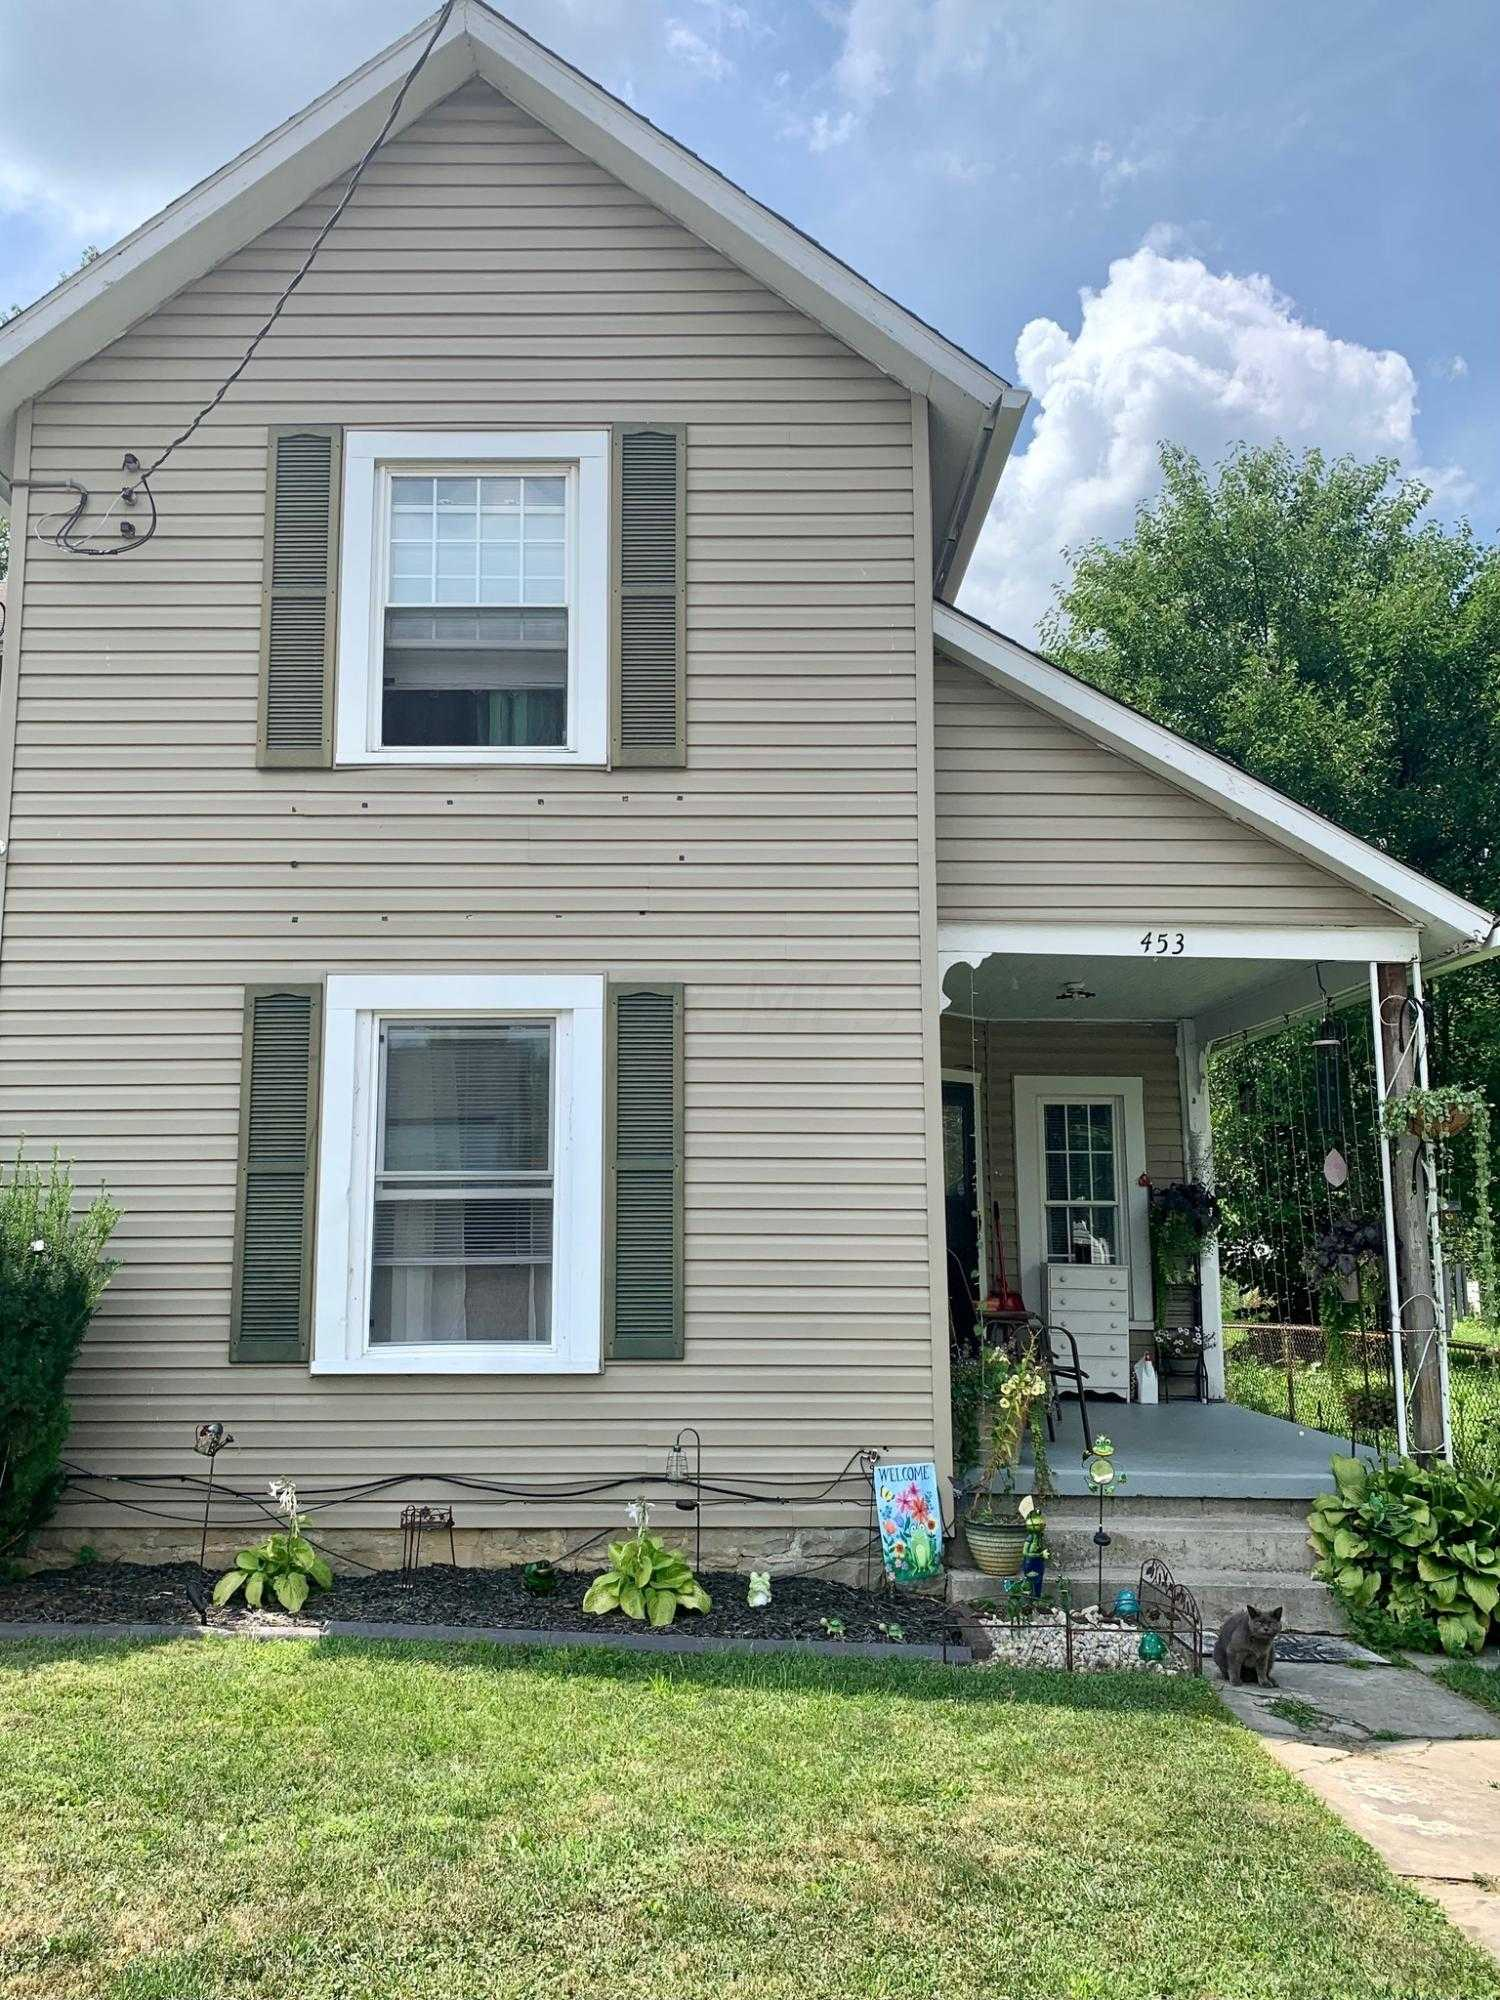 453 Cherry Street Marion,OH 43302 221025542